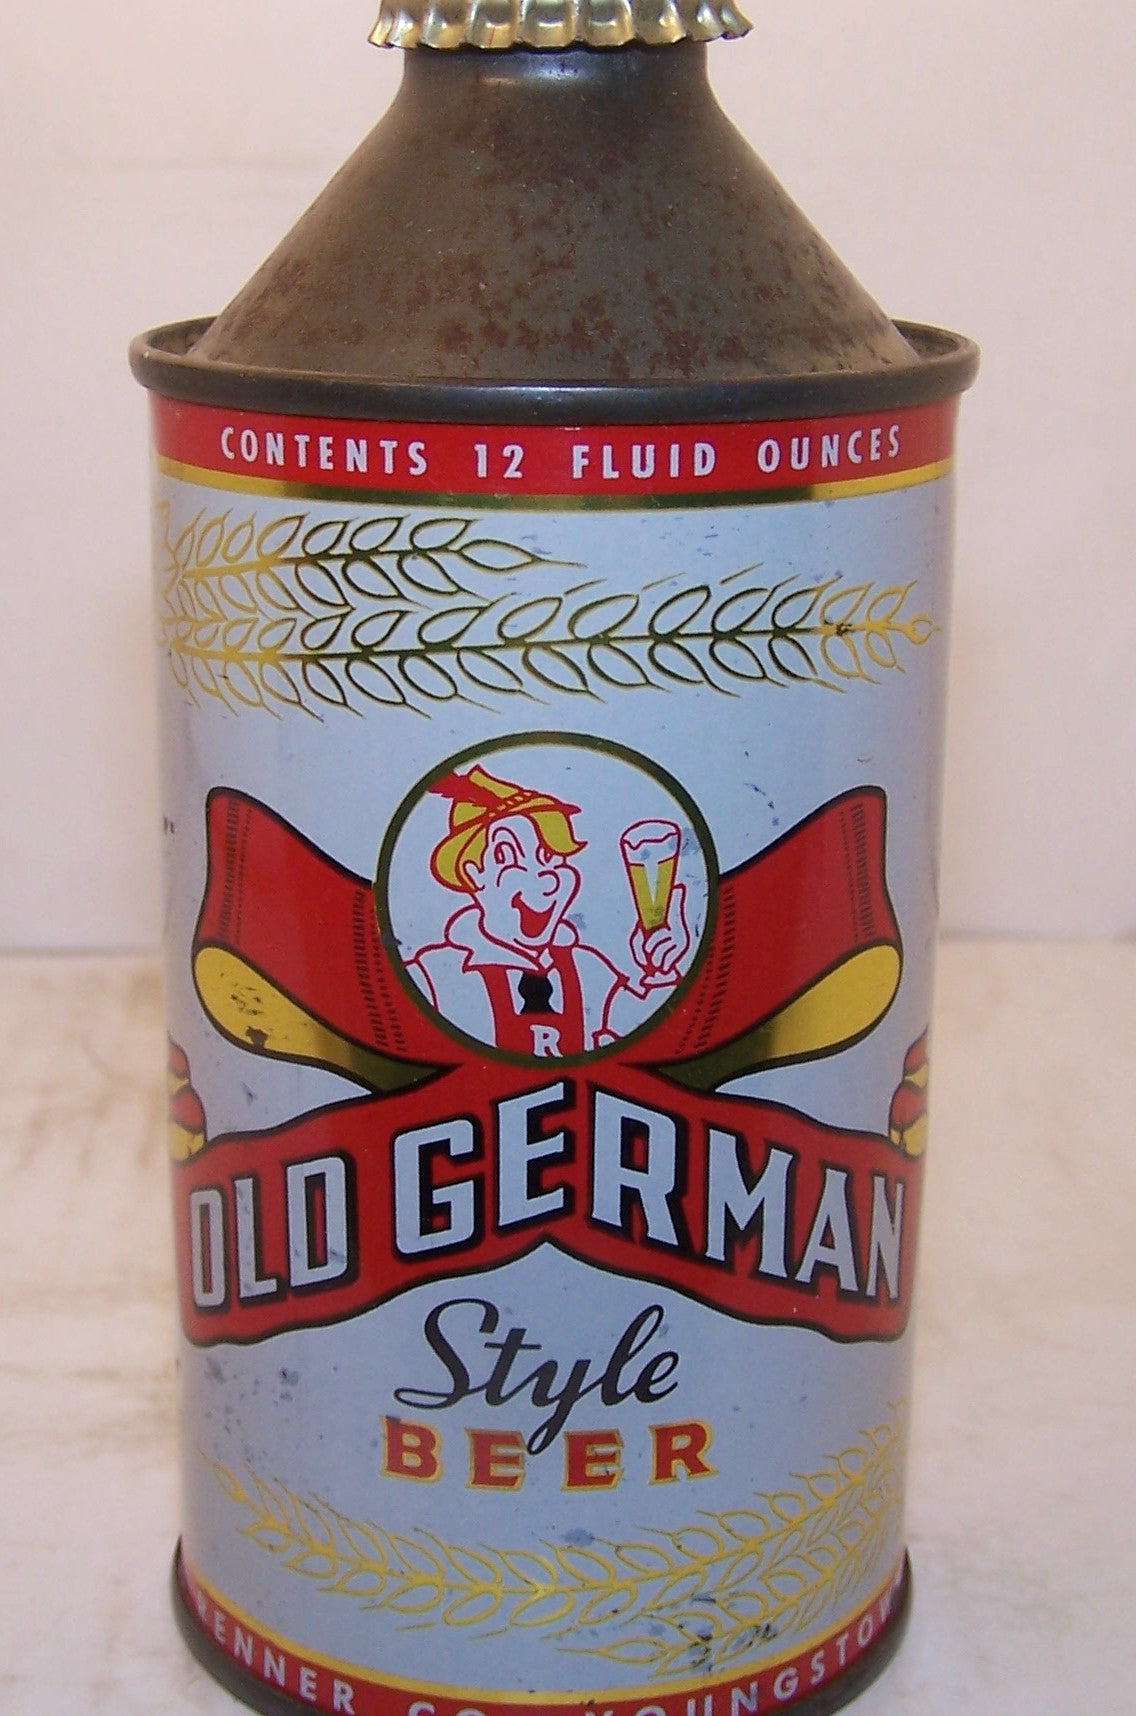 Old German Style Beer, USBC 176-26, Grade 1/1- Sold 2/11/15